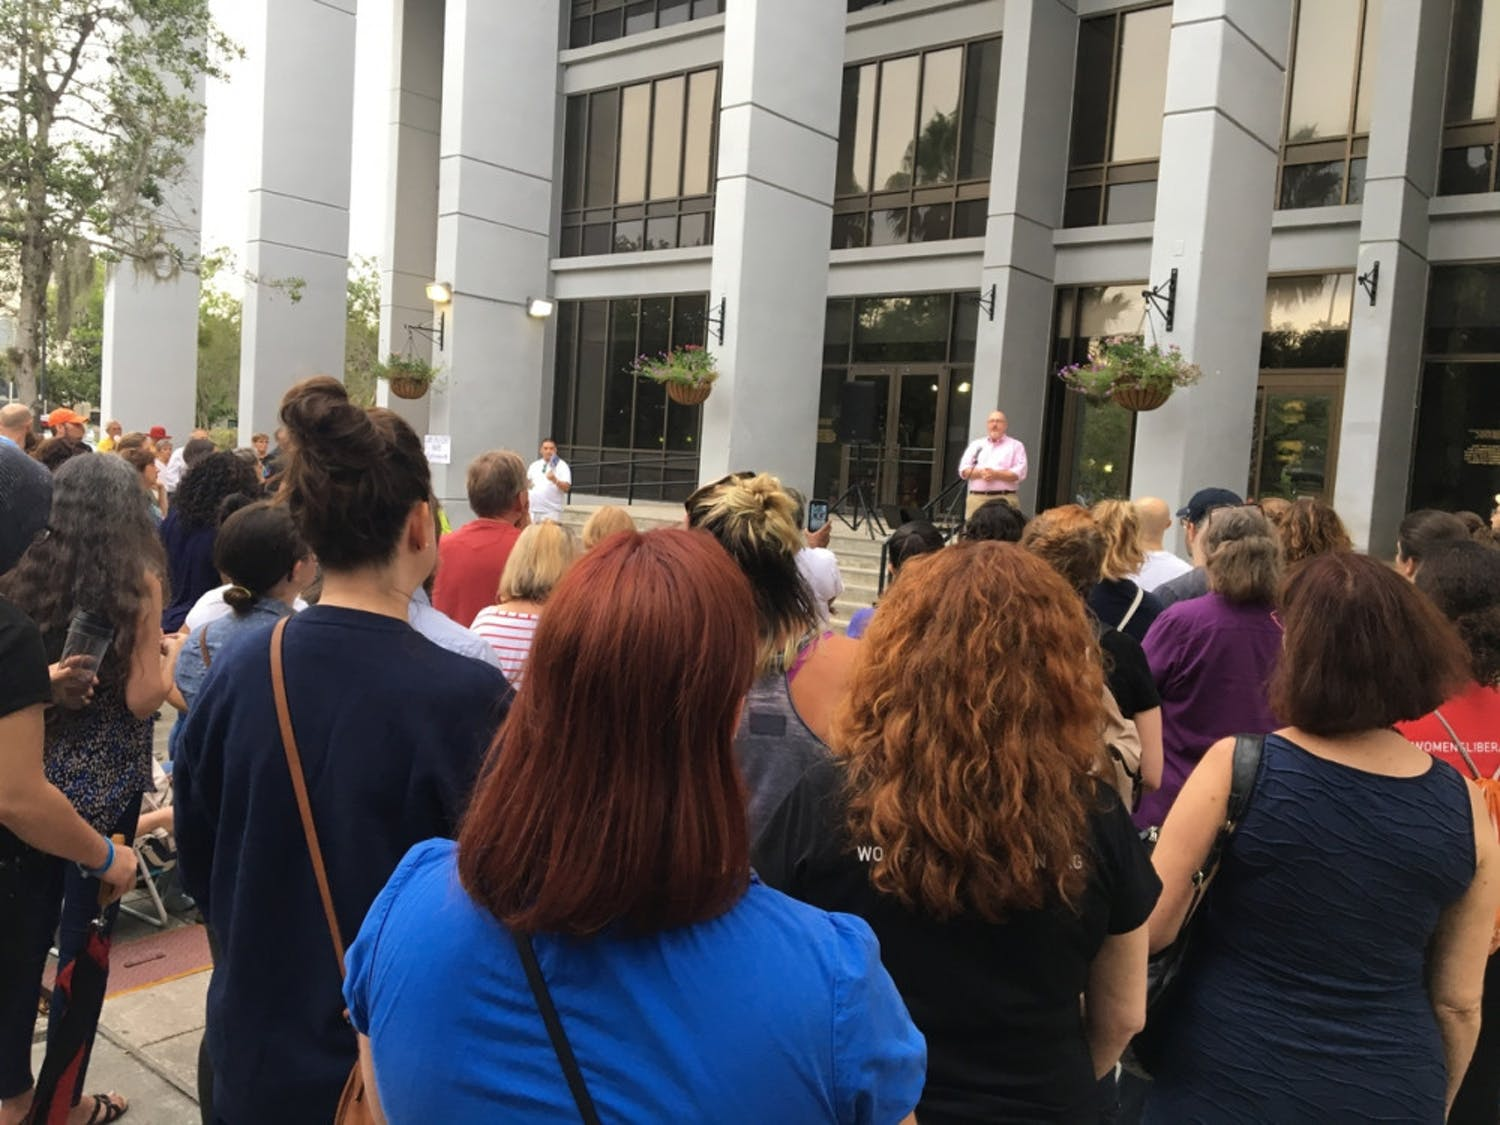 More than 300 people gather outside Gainesville City Hall to listen to Commissioner Harvey Ward Jr. speak about the Charlottesville, Virginia white supremacy rally and encourage people to get involved with their community.